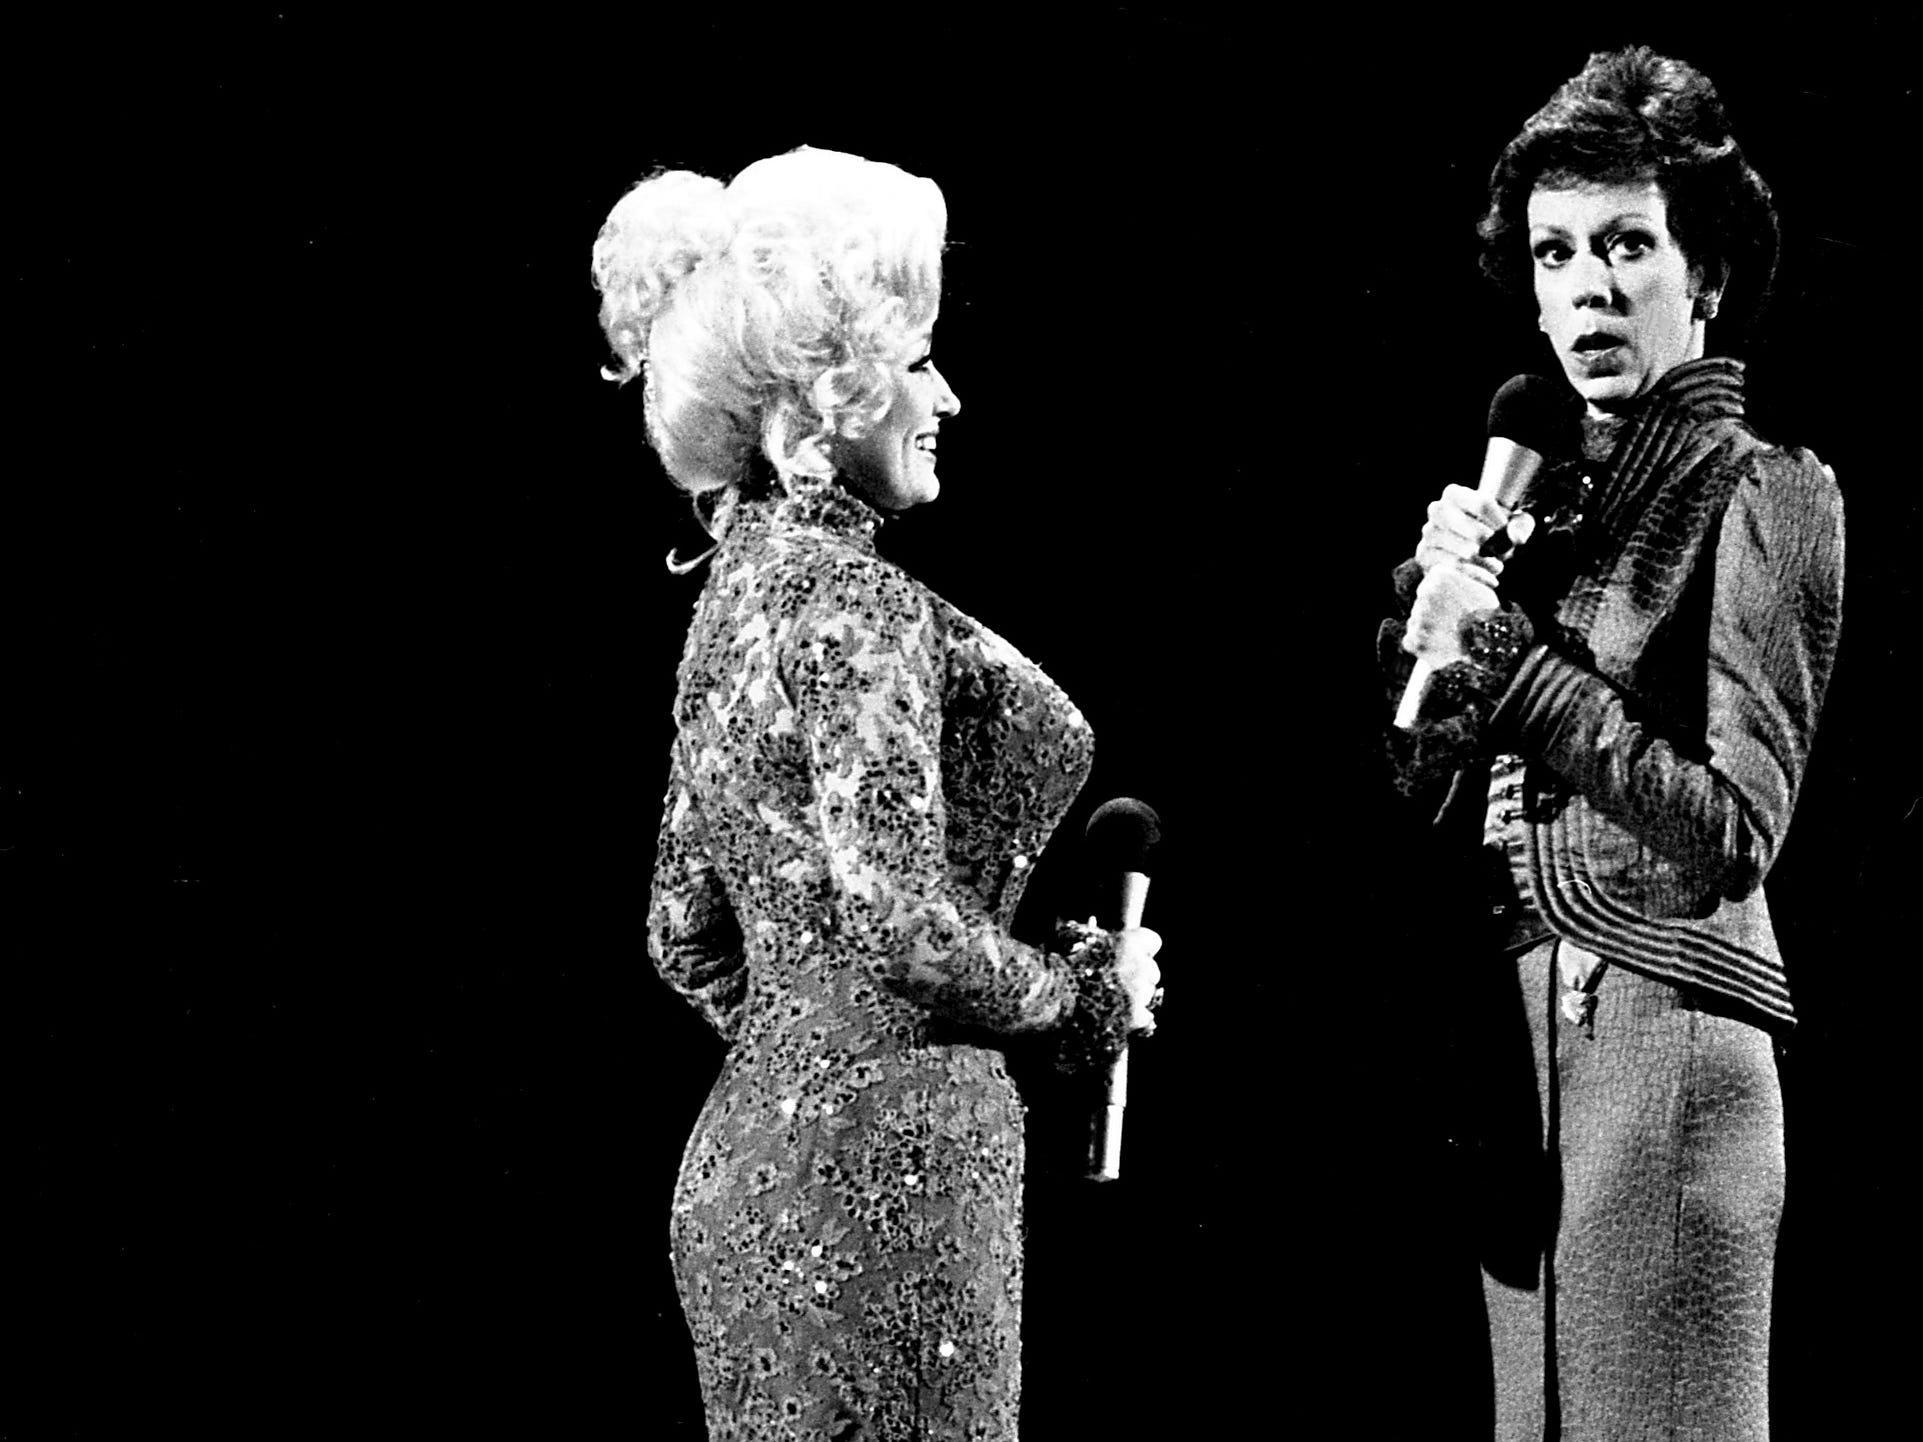 """Dolly Parton and Carol Burnett are performing during their mock-melodramatic love song skit during the taping of the """"Dolly and Carol in Nashville"""" television special before a packed audience at the Grand Ole Opry House Jan. 10, 1979."""